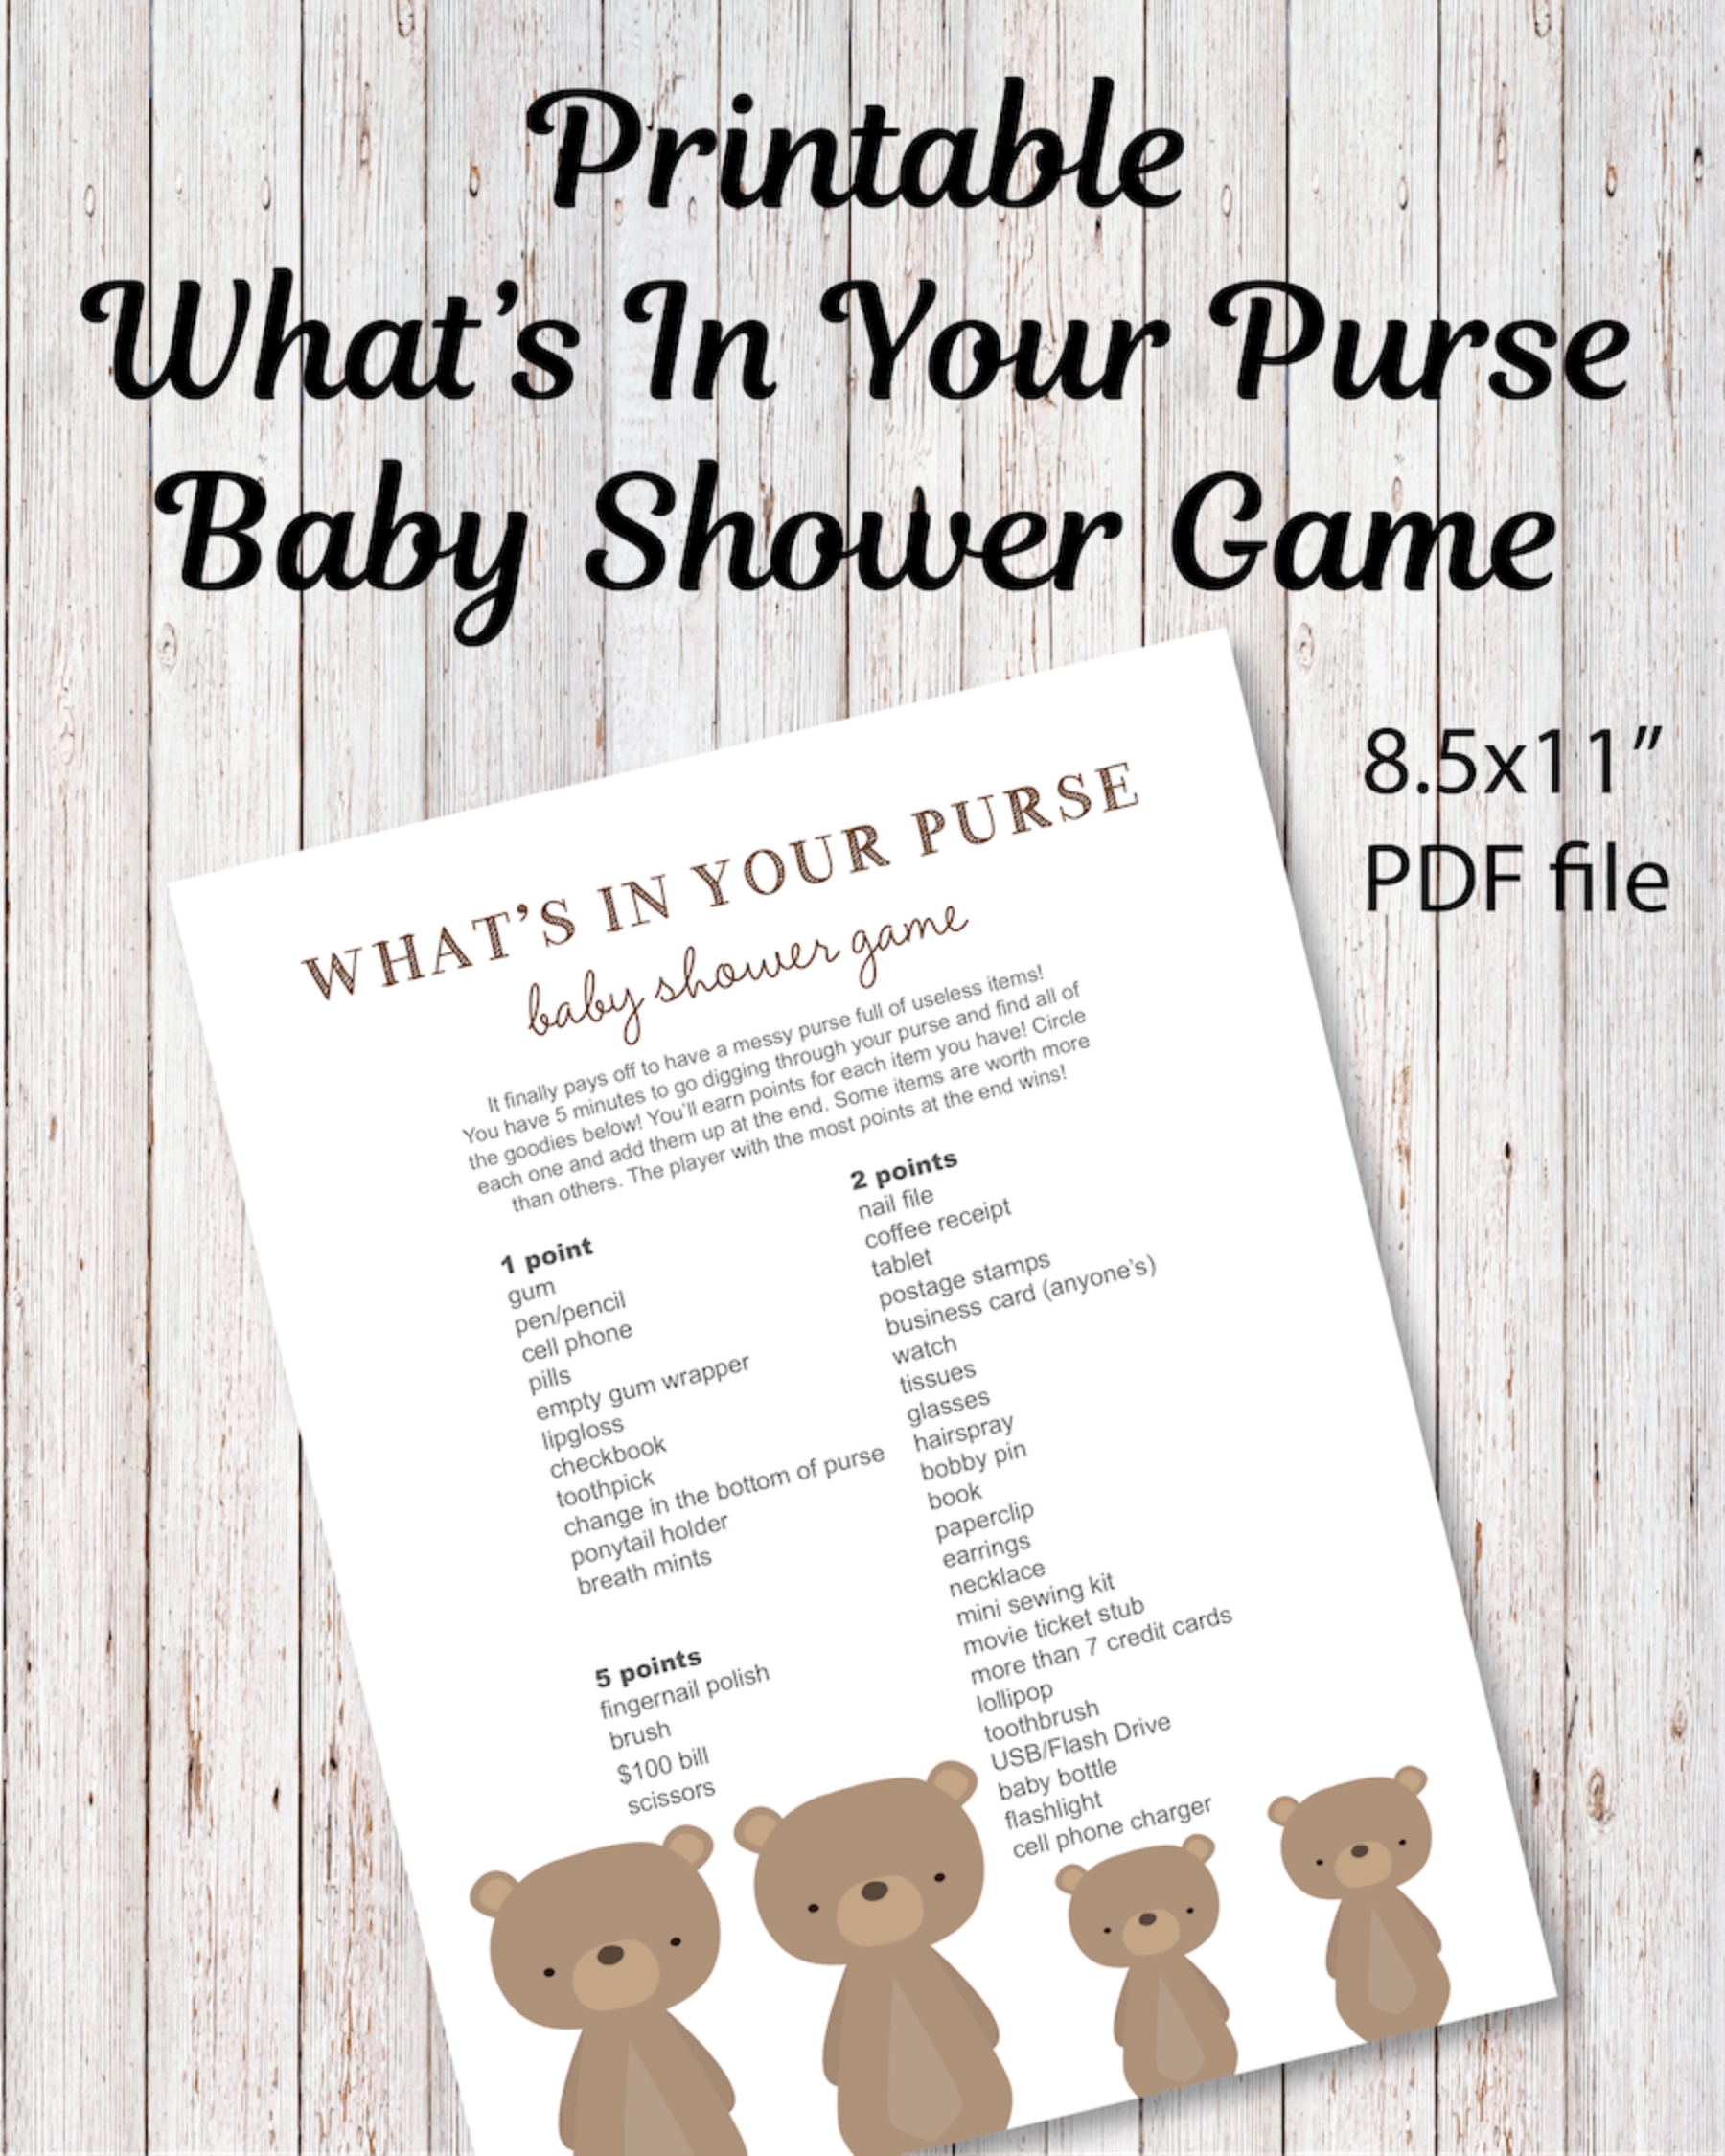 picture about What's in Your Purse Printable named Printable Whats Inside of Your Purse Little one Shower Match - Woodland Endure Little one Shower Concept - Print It Kid